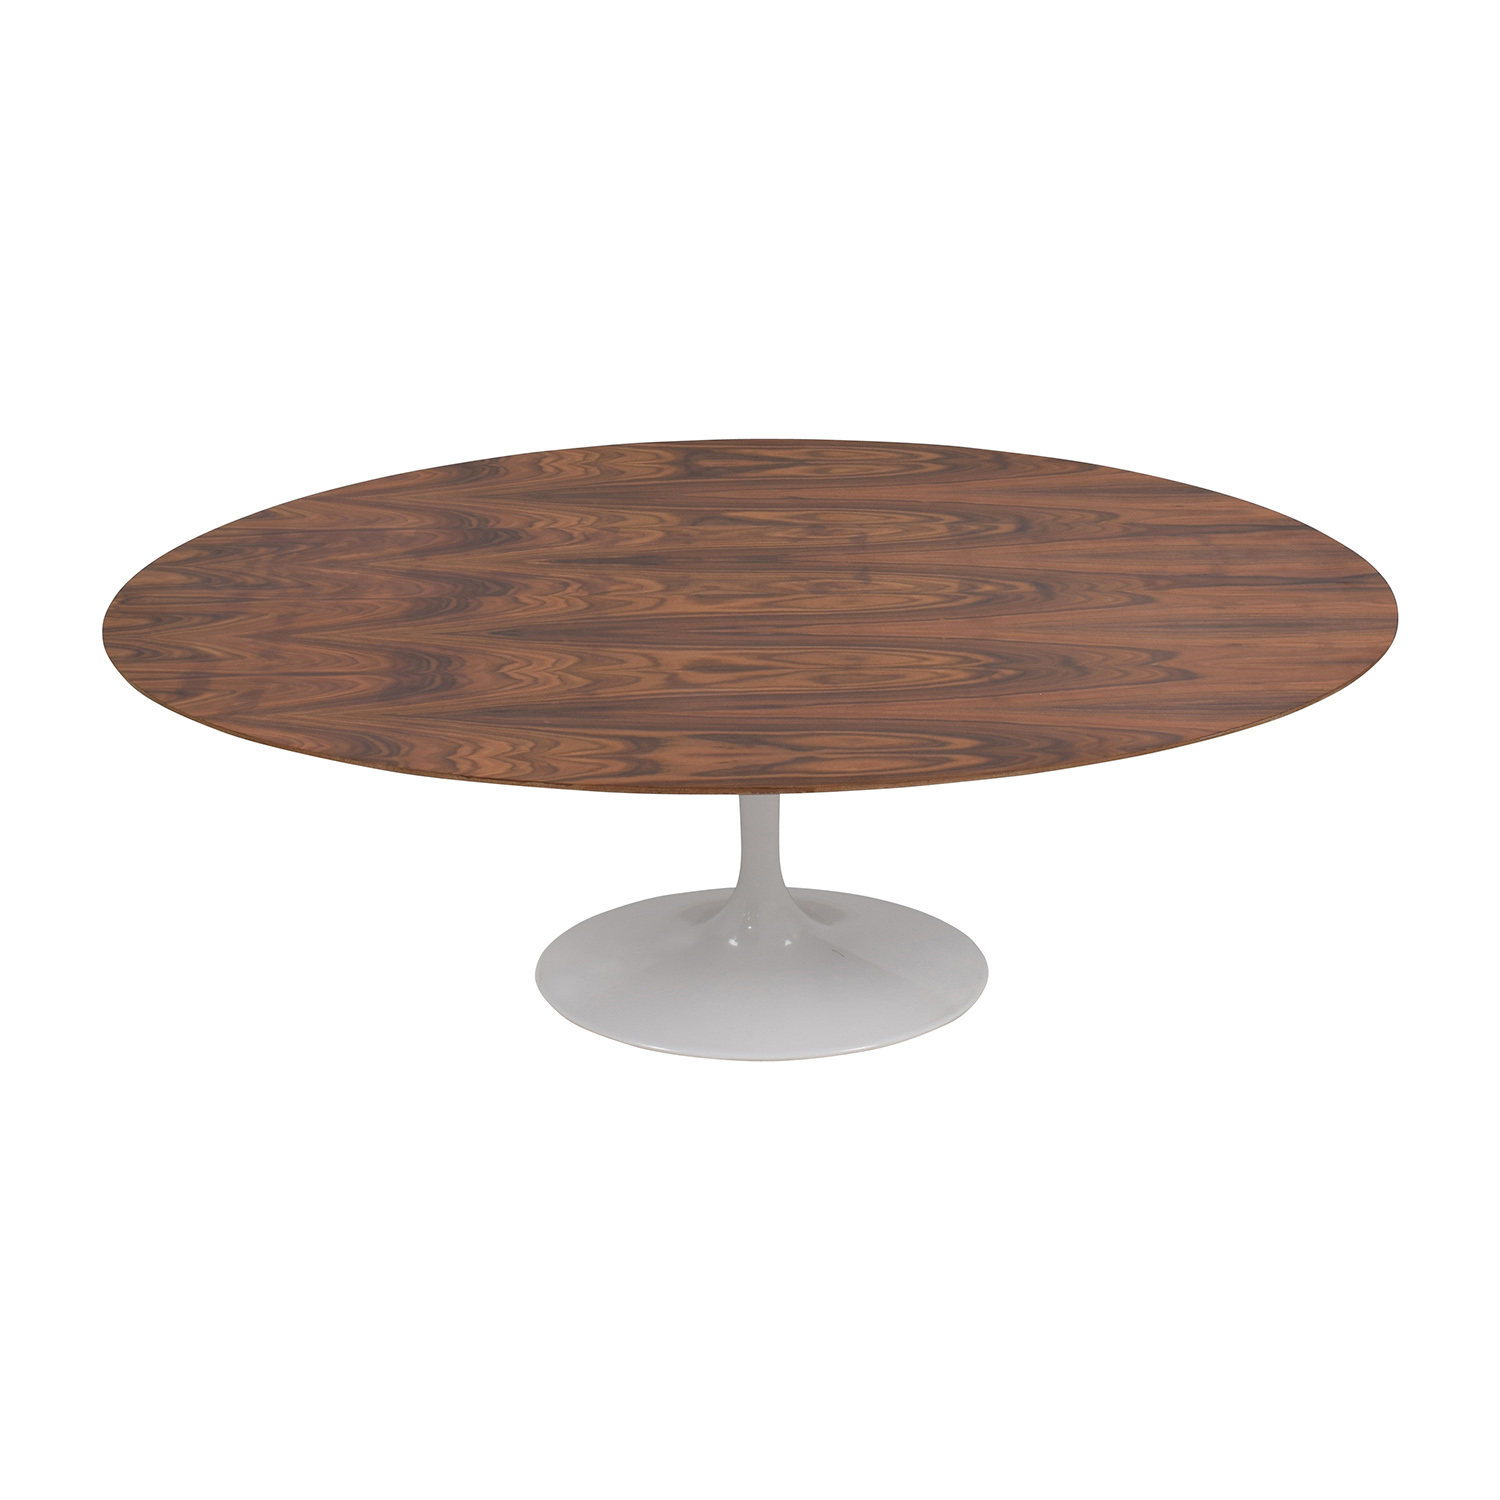 InMod InMod Saarinen Oval Pedestal Dining table dimensions